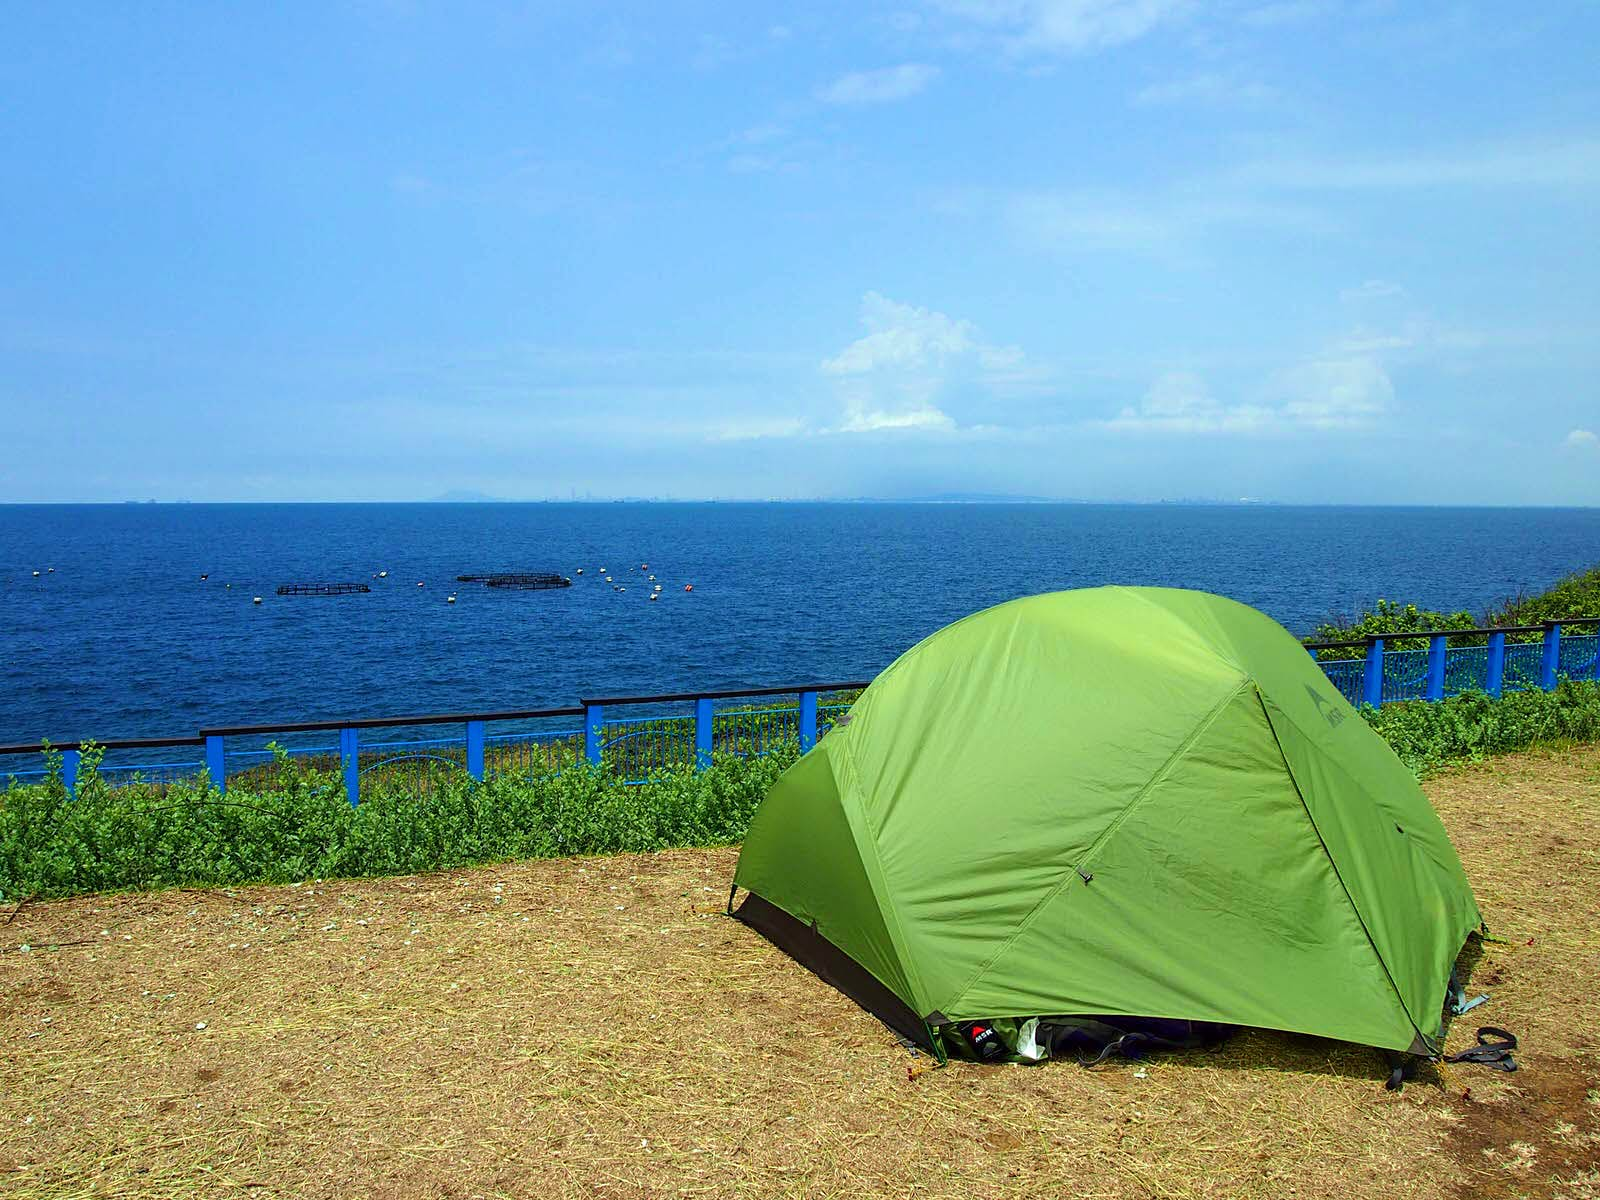 A green tent pitched on a patch of dirt overlooking the sea. Camping is popular on Little Liuchiu and offers amazing views © Tess Humphrys / Lonely Planet